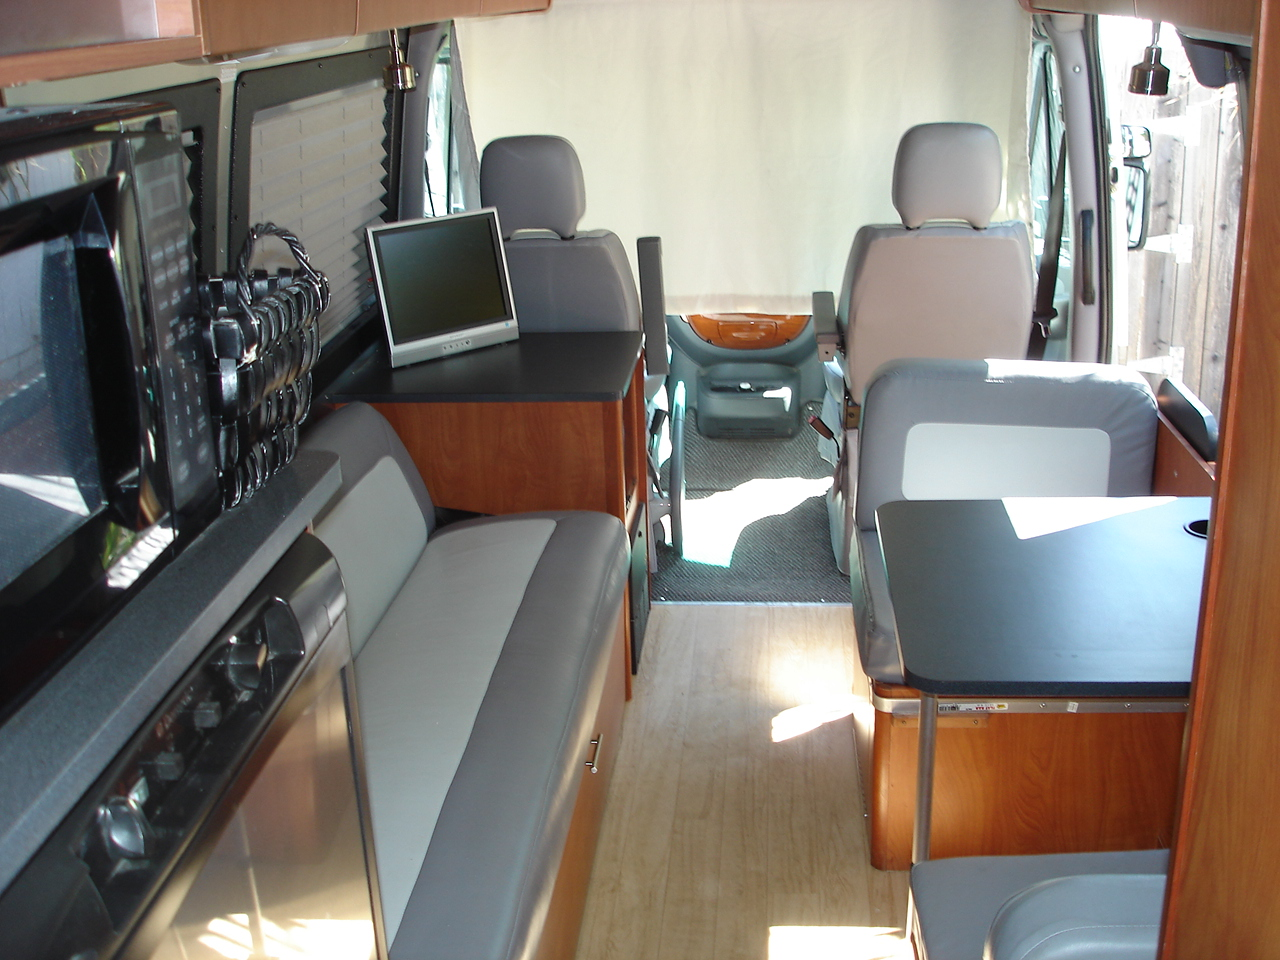 Click image for larger version  Name:Airstream Sprinter Motorhome 007.jpg Views:43 Size:602.9 KB ID:217958